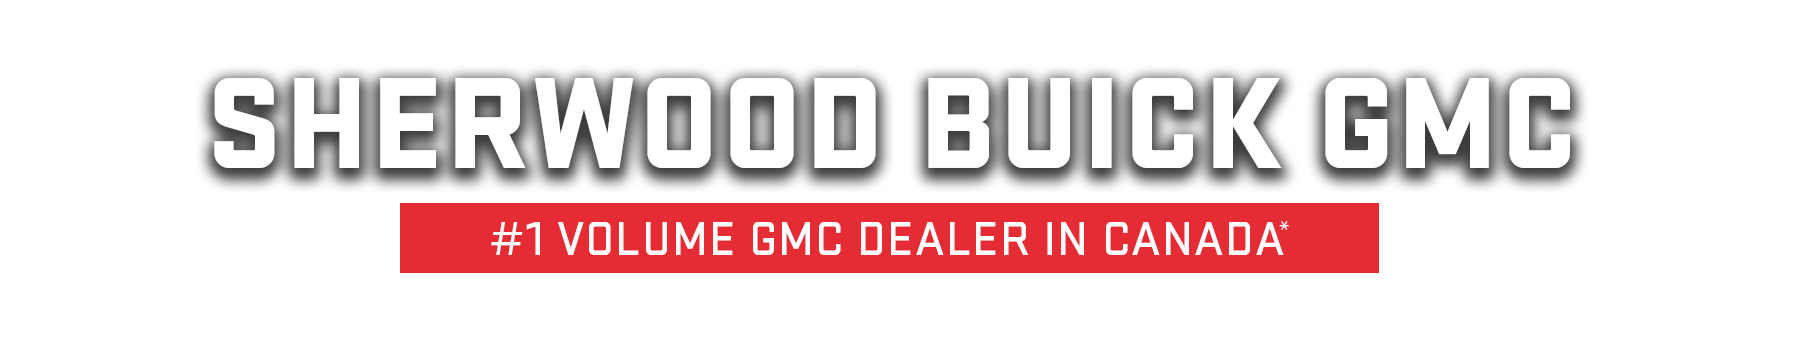 #1 GMC Dealer in Canada